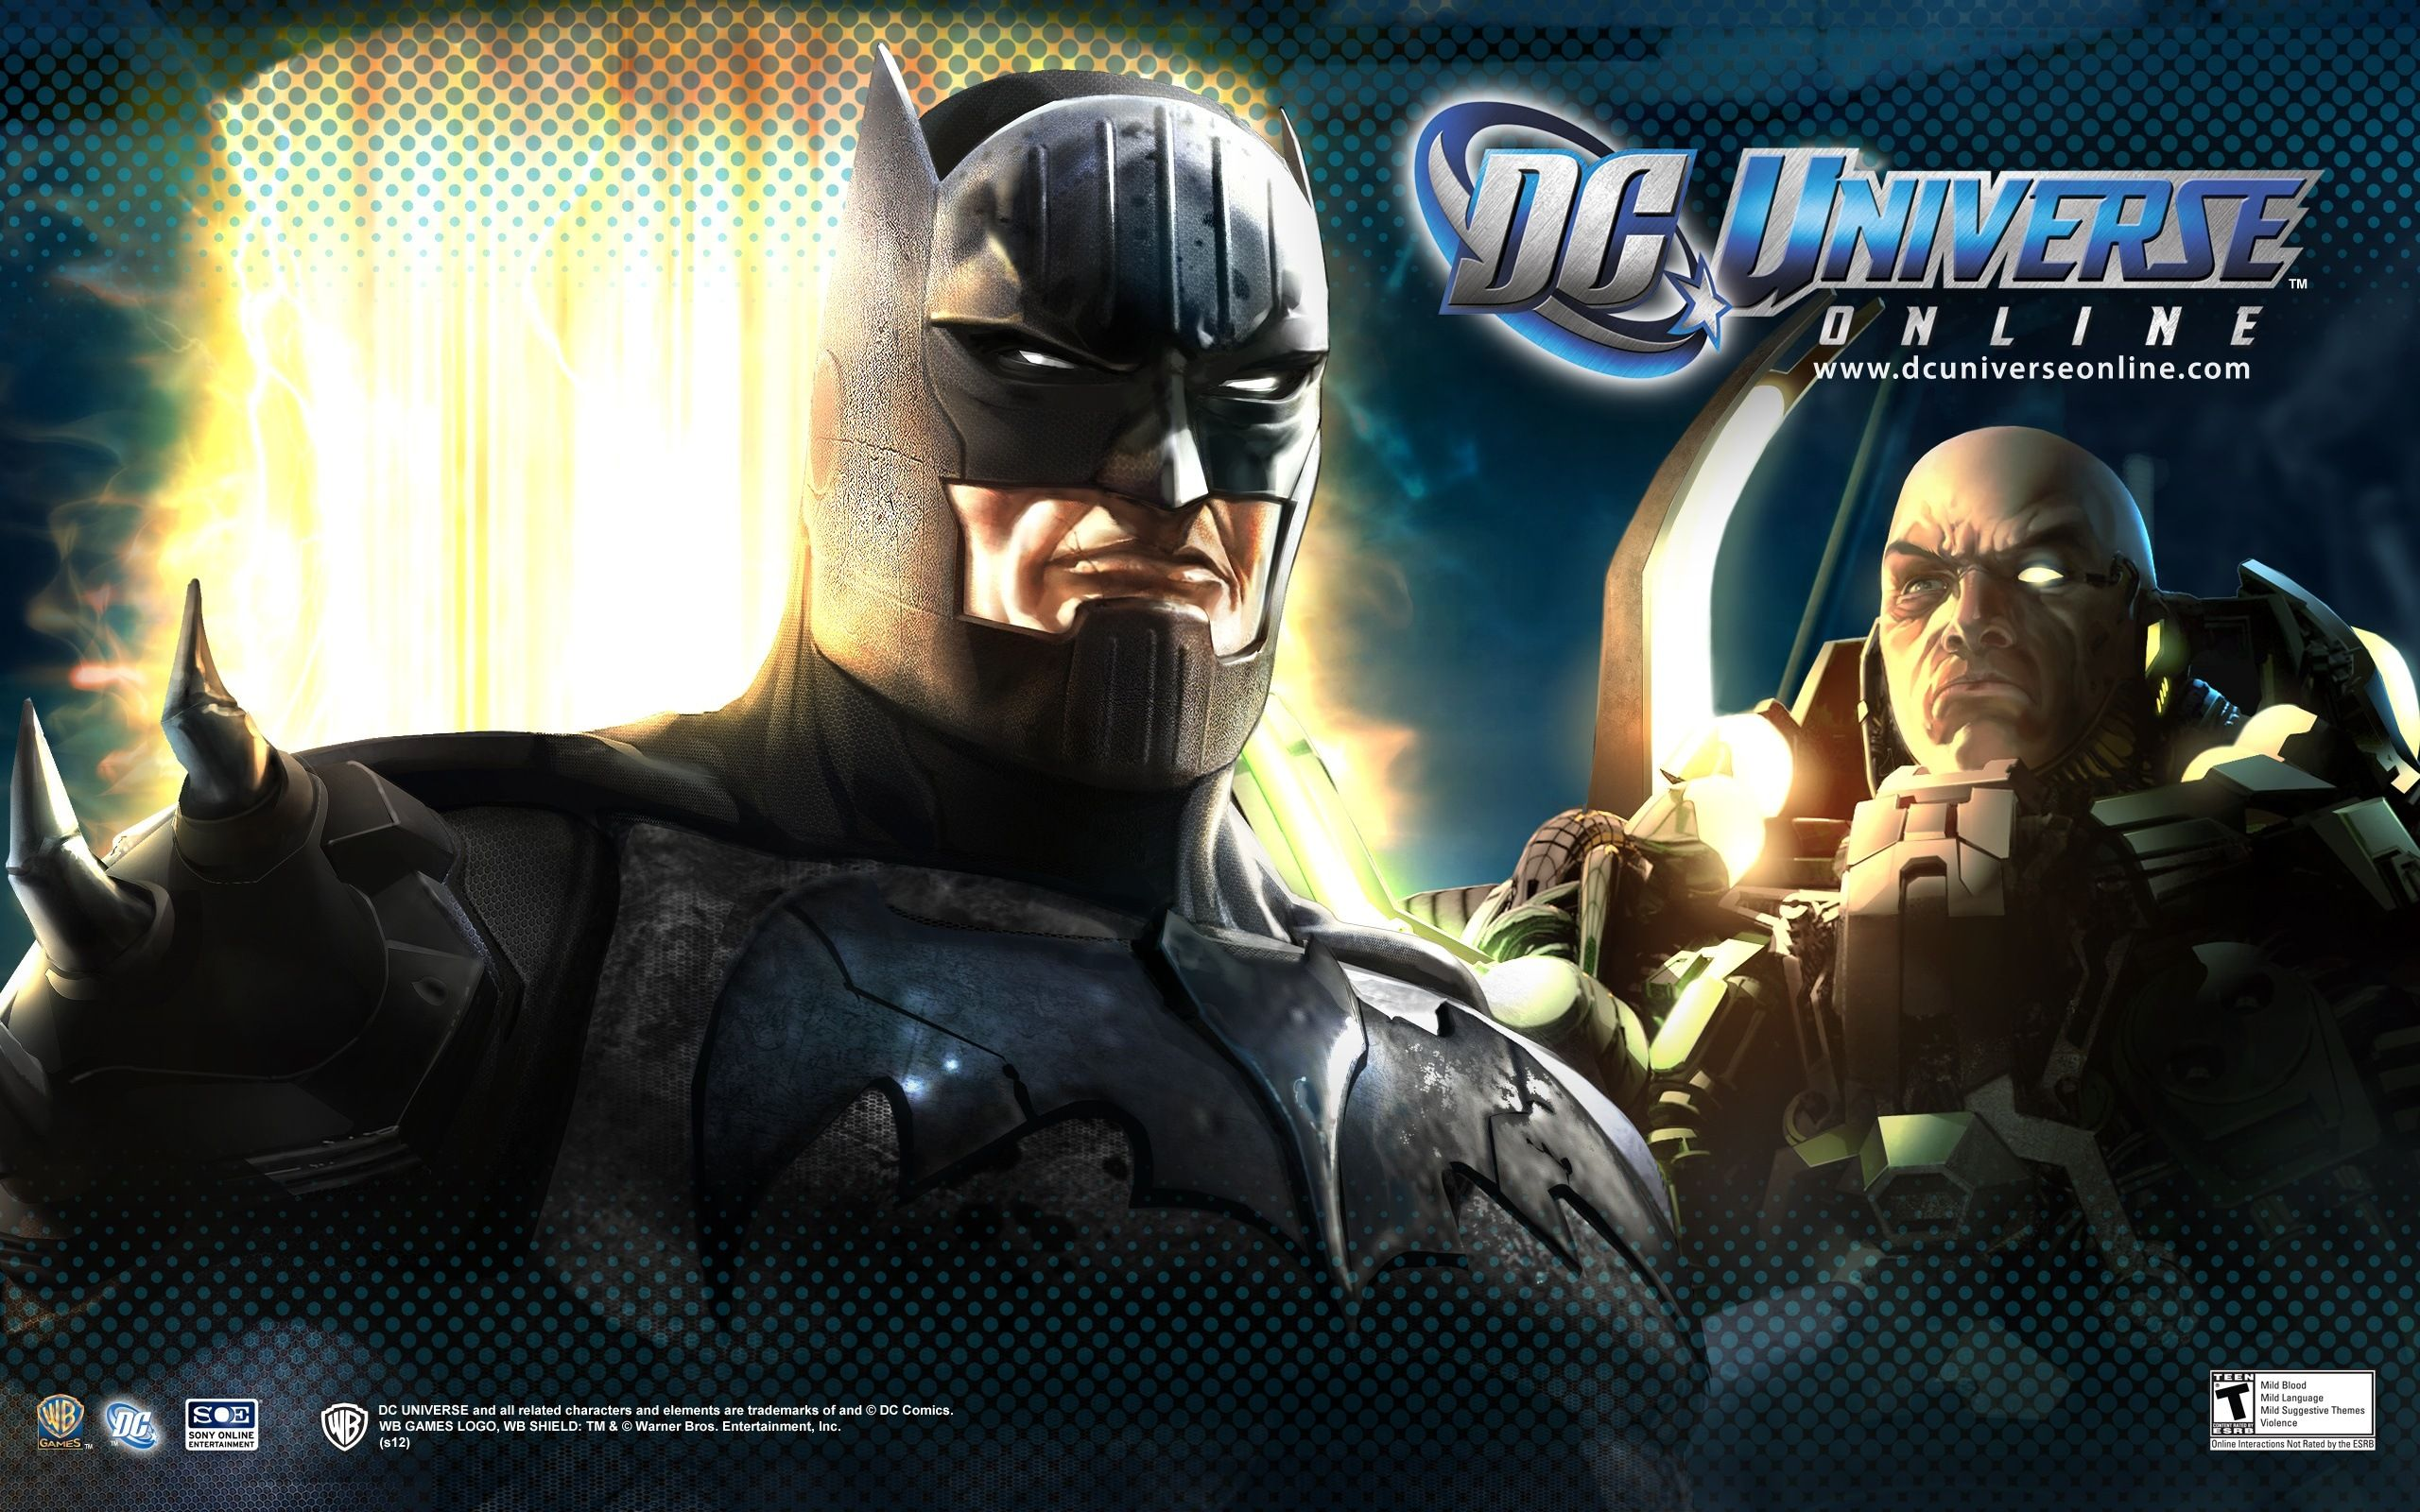 2560x1600 2560x1600px – Dc Universe Online Wallpapers